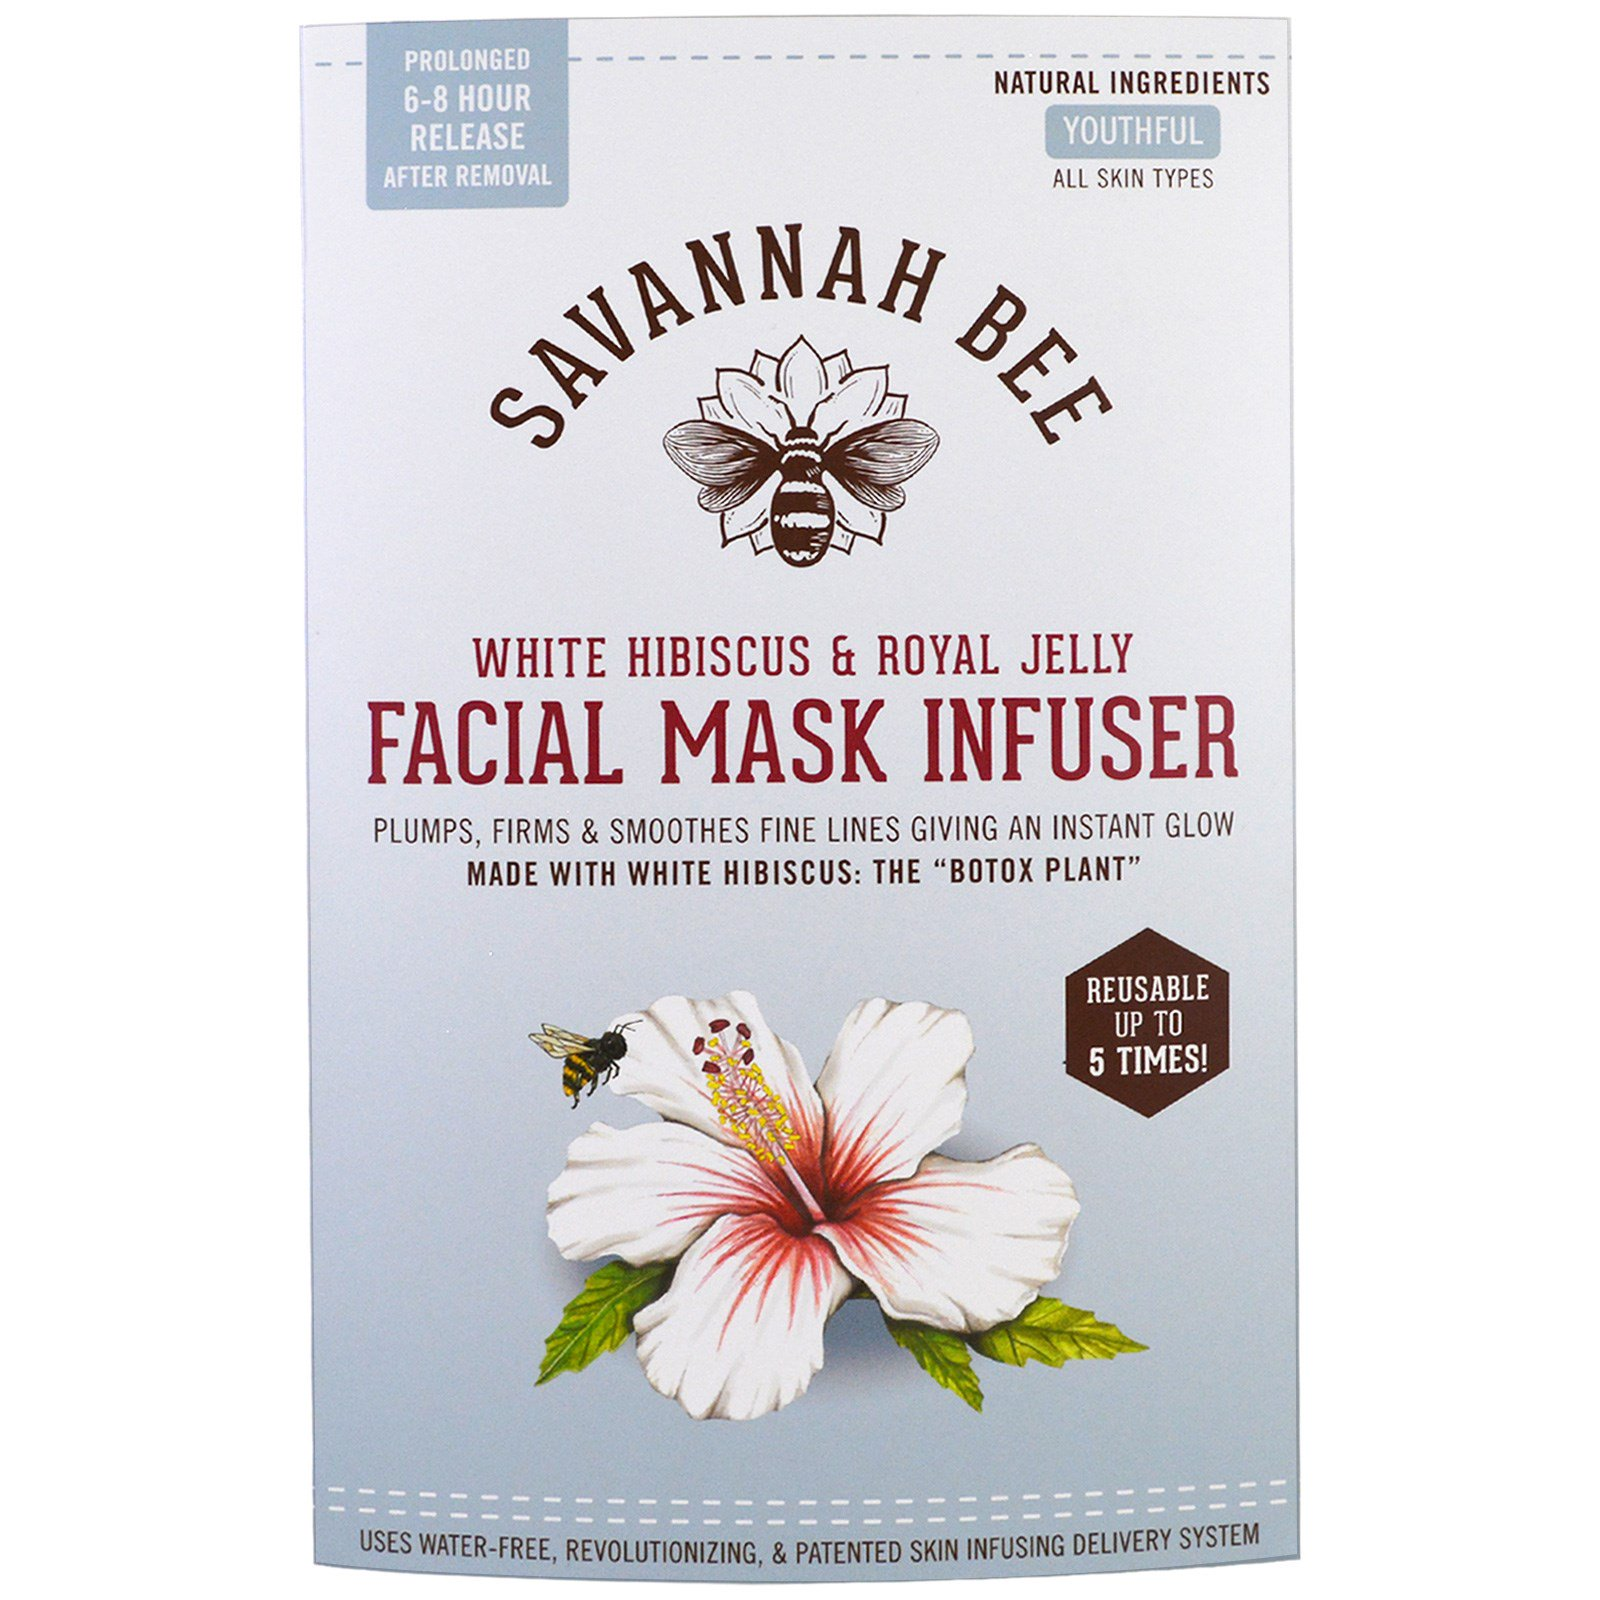 Savannah Bee Company Inc Facial Mask Infuser White Hibiscus Jellys Pure Face Power Soap Royal Jelly 1